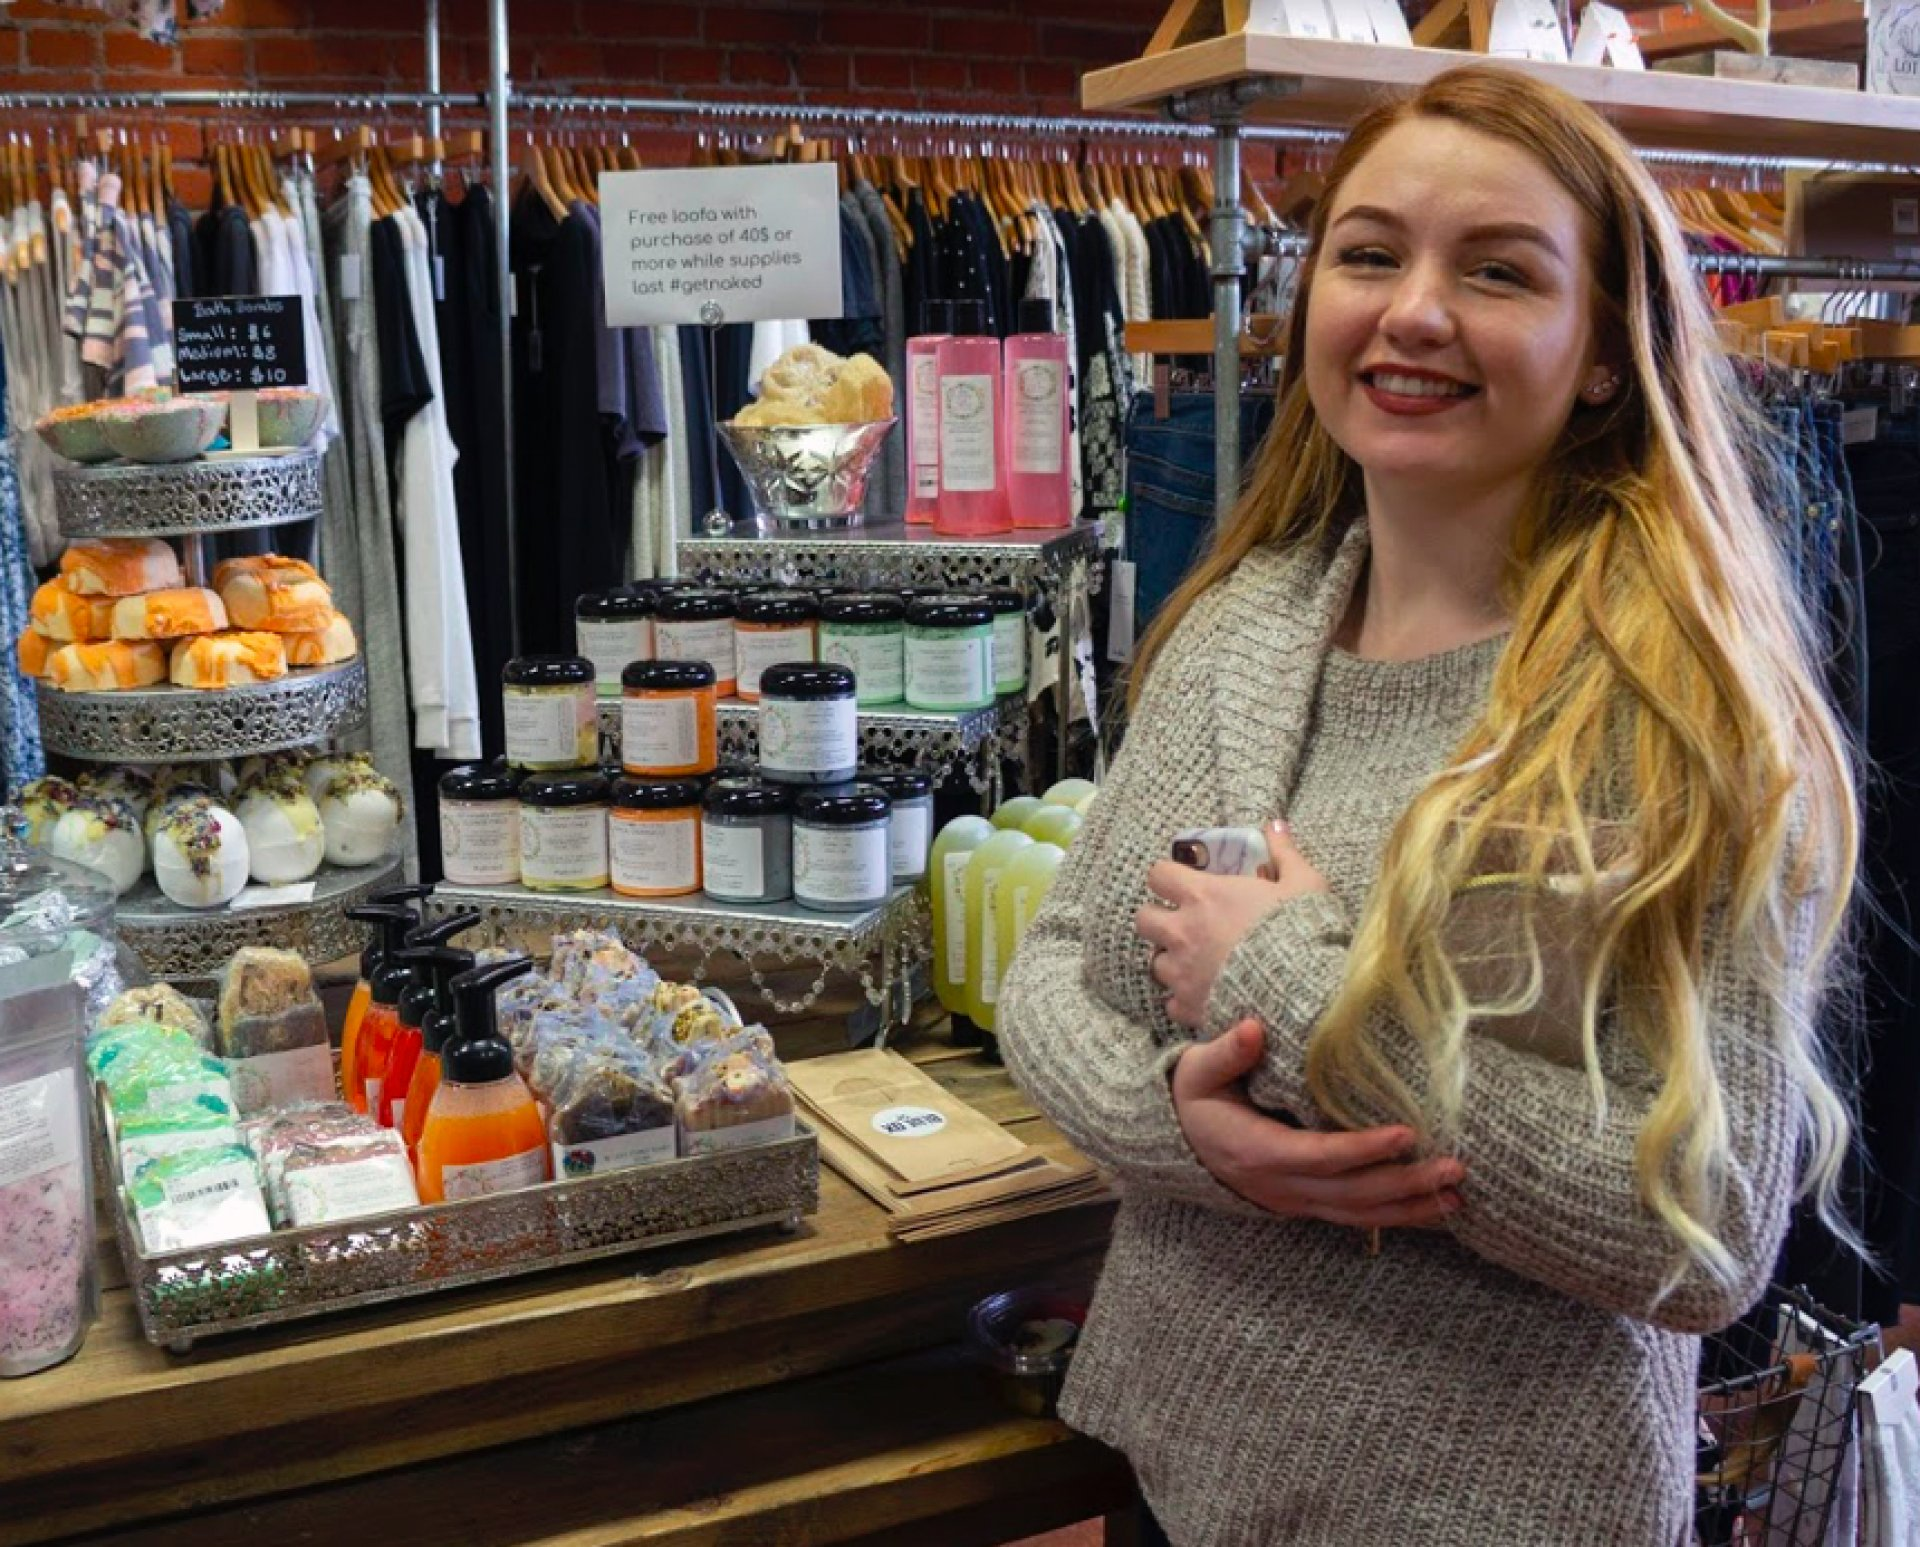 Violet Crane with her line Queen Bee Naturals after dropping them off in Blue Ox Boutique. Photo by Stella Stokes.